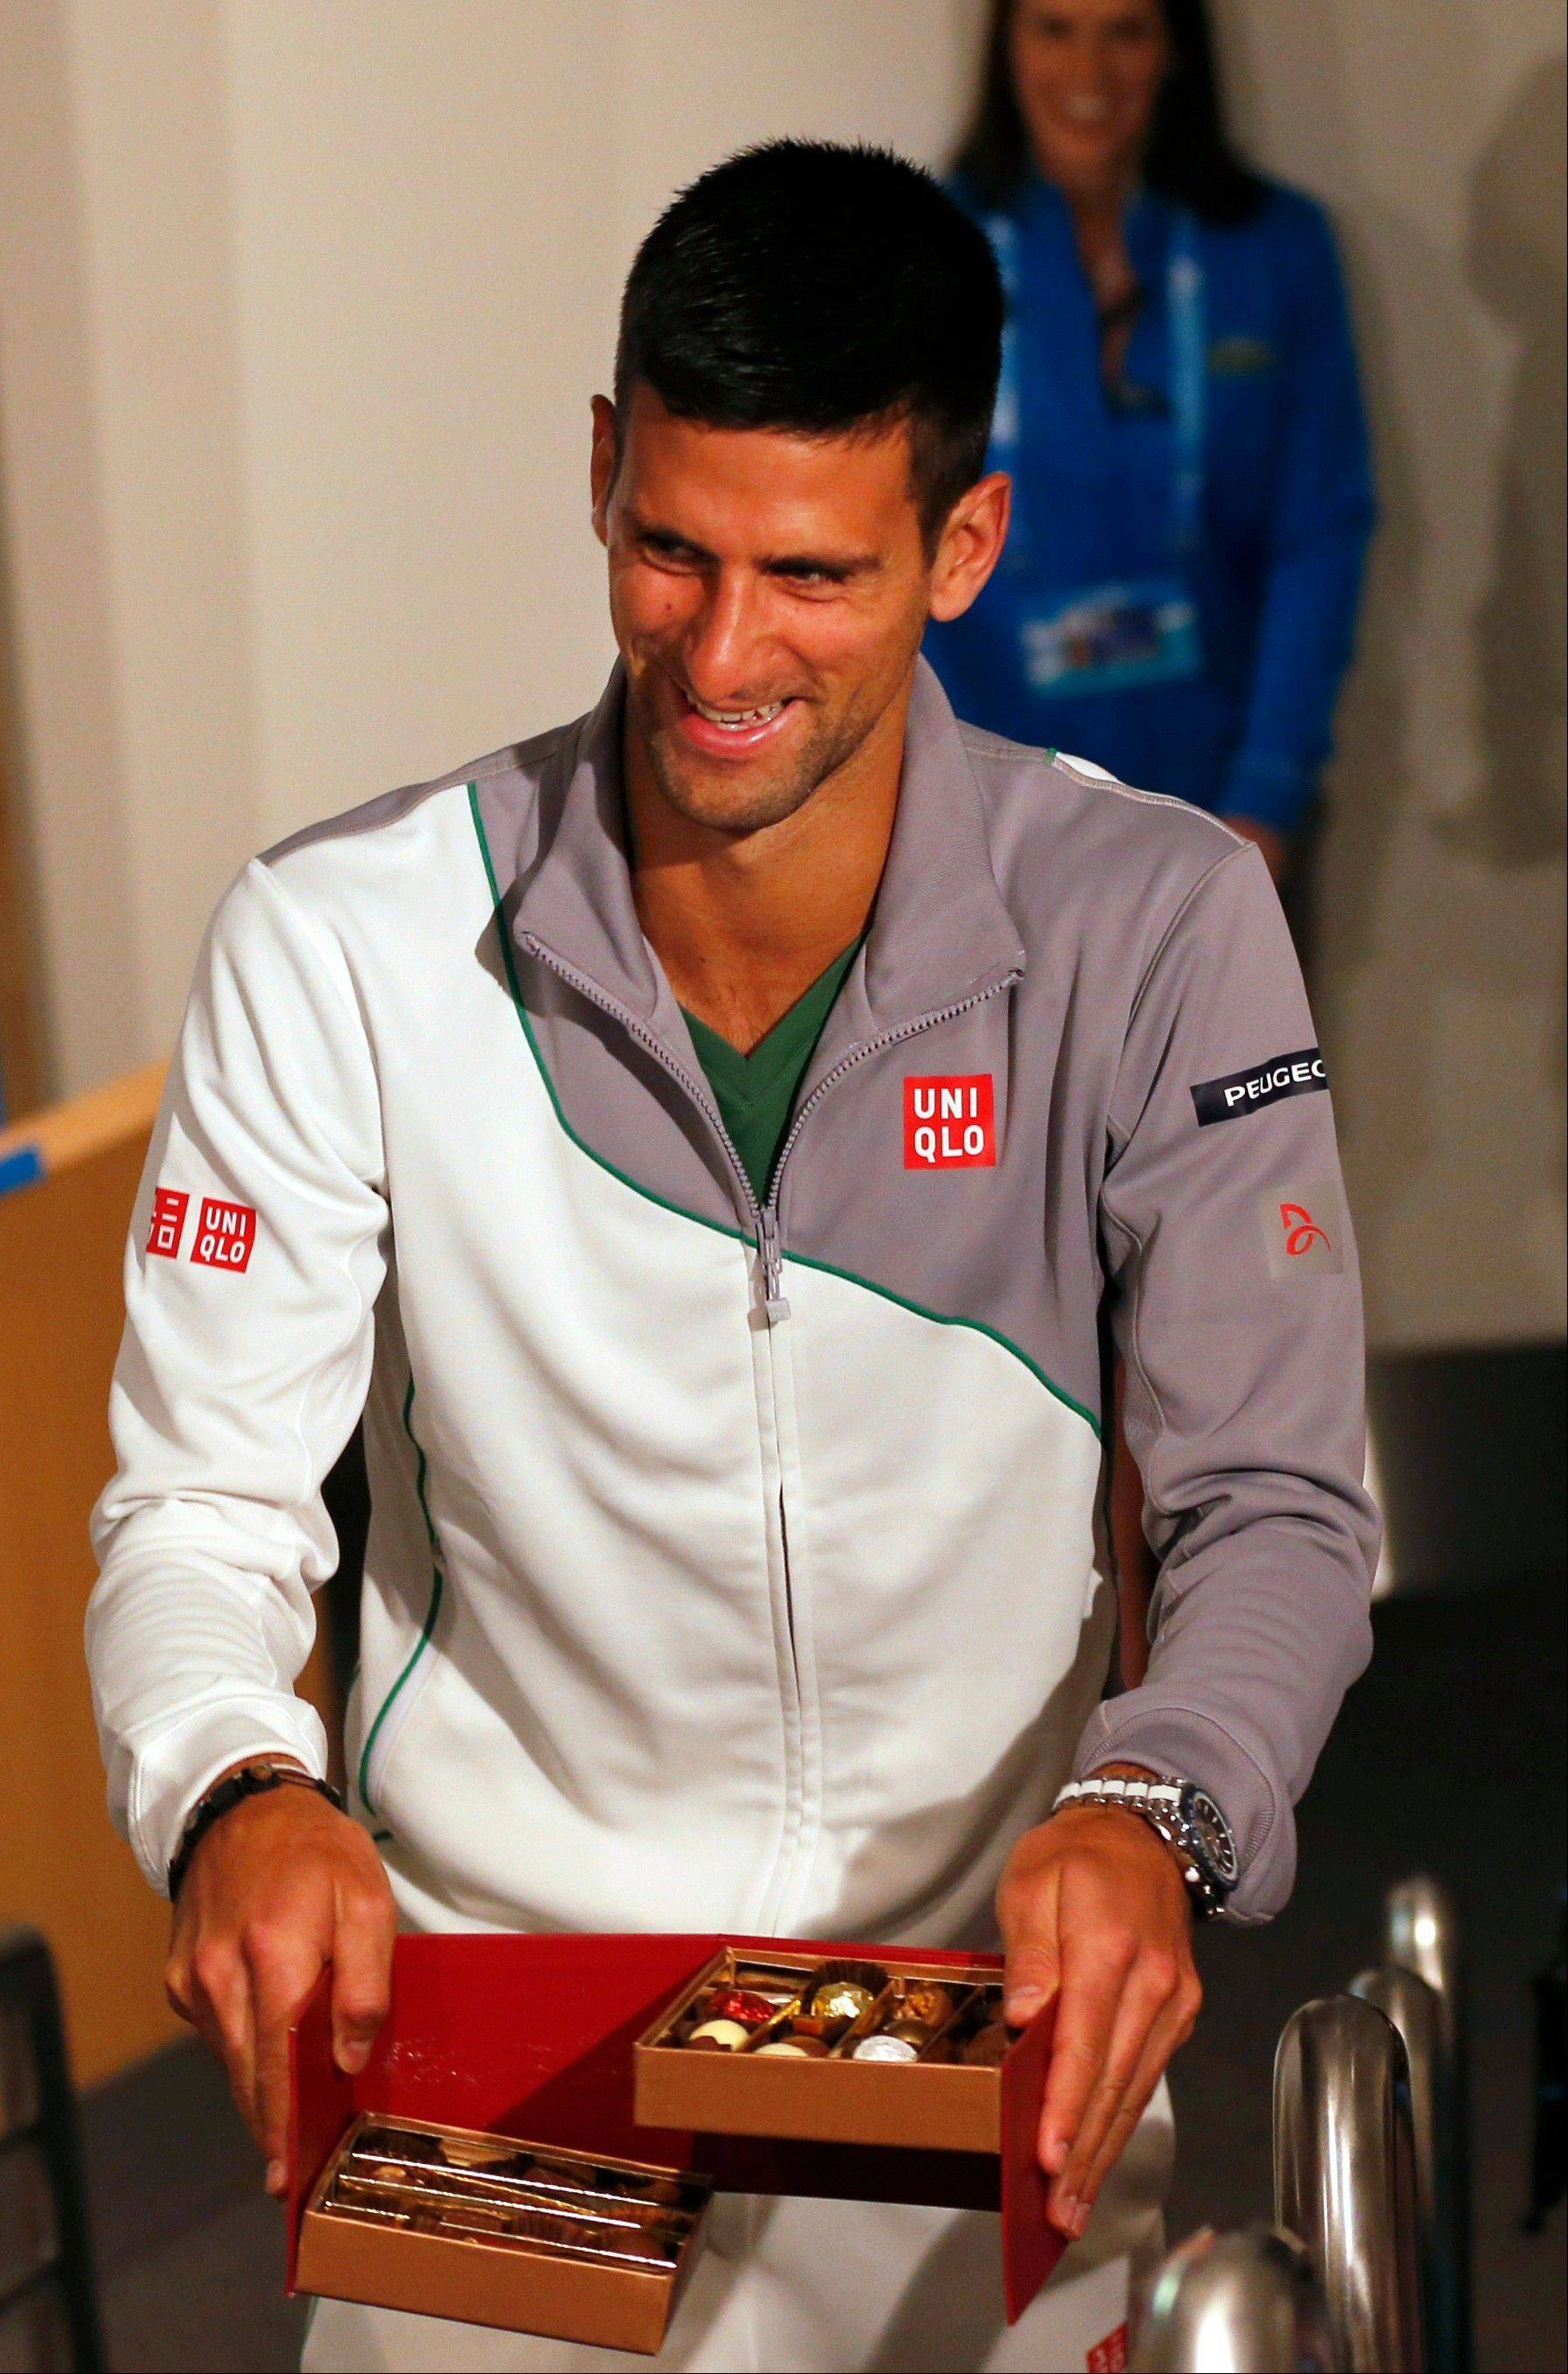 Novak Djokovic, who is seeking his fourth straight Australian Open tennis title, hands out chocolate to reporters during a news conference ahead of the championship tournament in Melbourne, Australia.